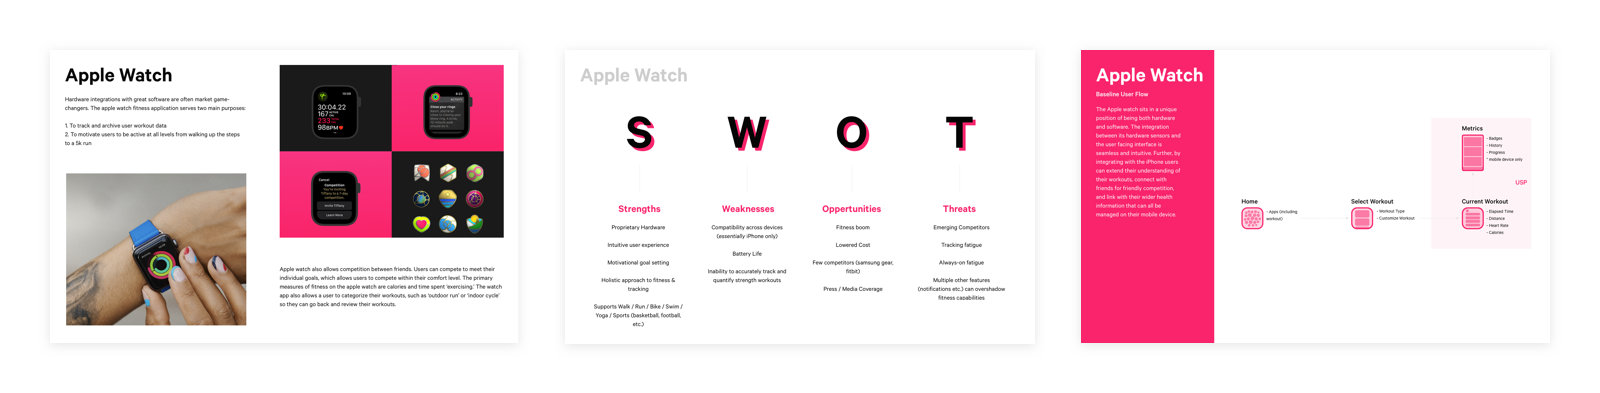 Presentation pages showcasing research outcomes from investigating the  Apple Watch activity app